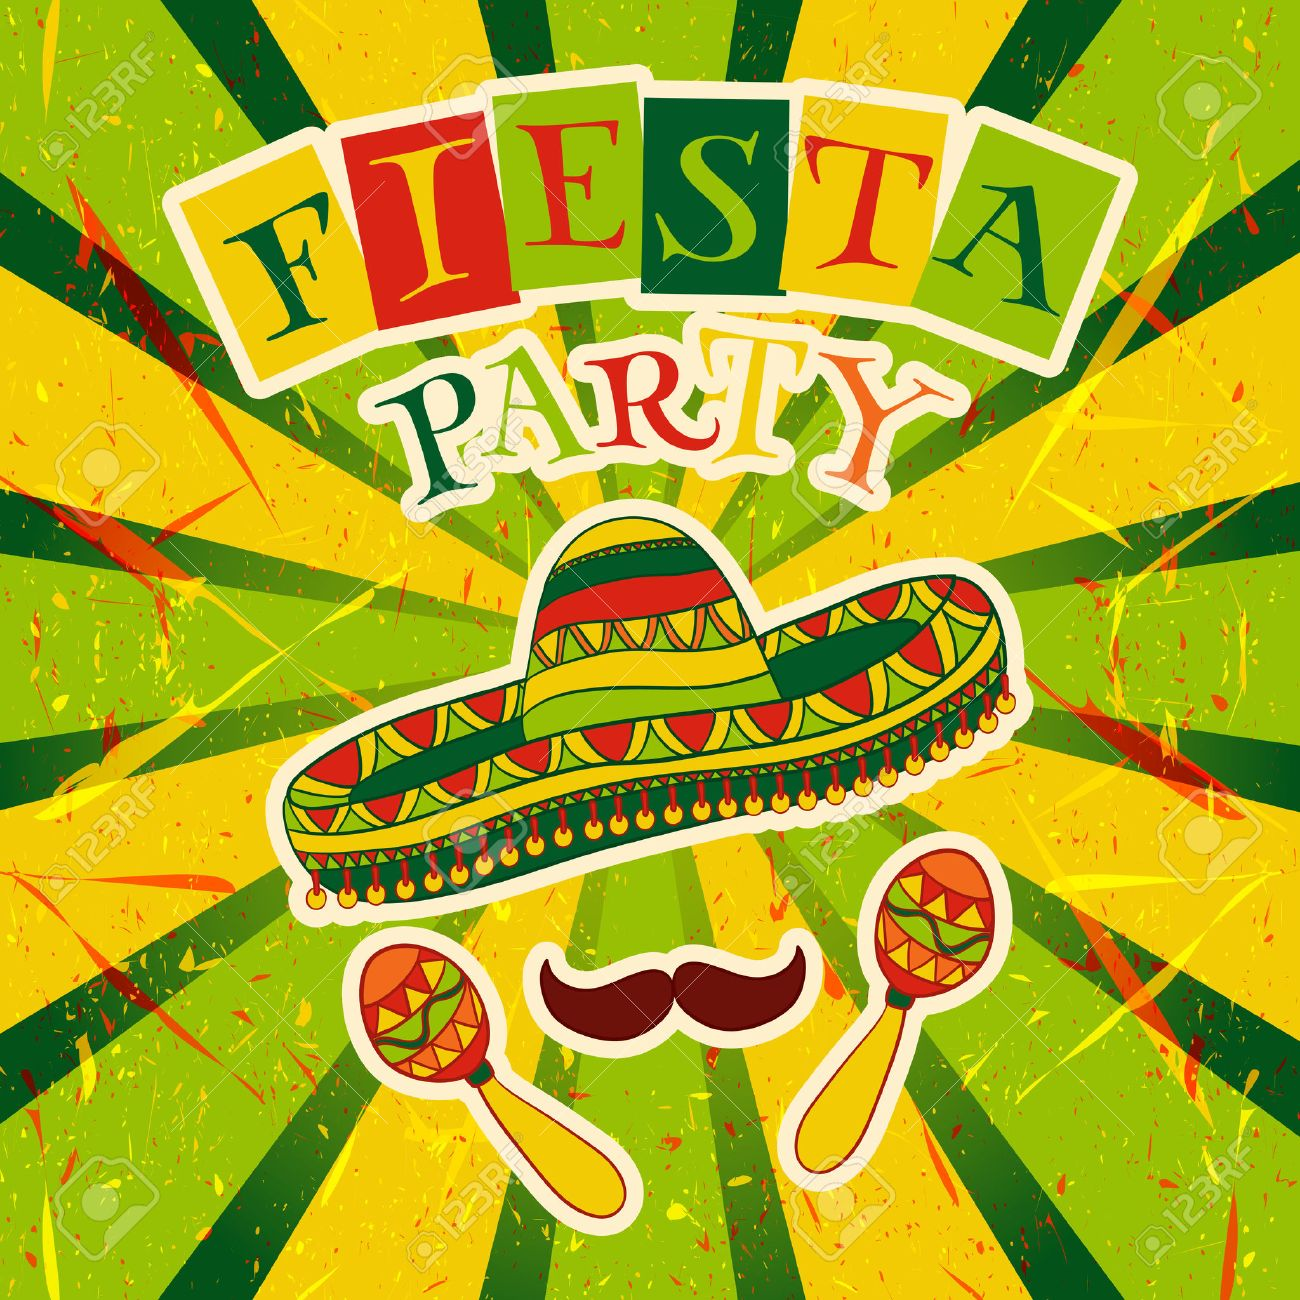 Mexican Fiesta Party Invitation with maracas, sombrero and mustache. Hand drawn illustration poster with grunge background - 43853183